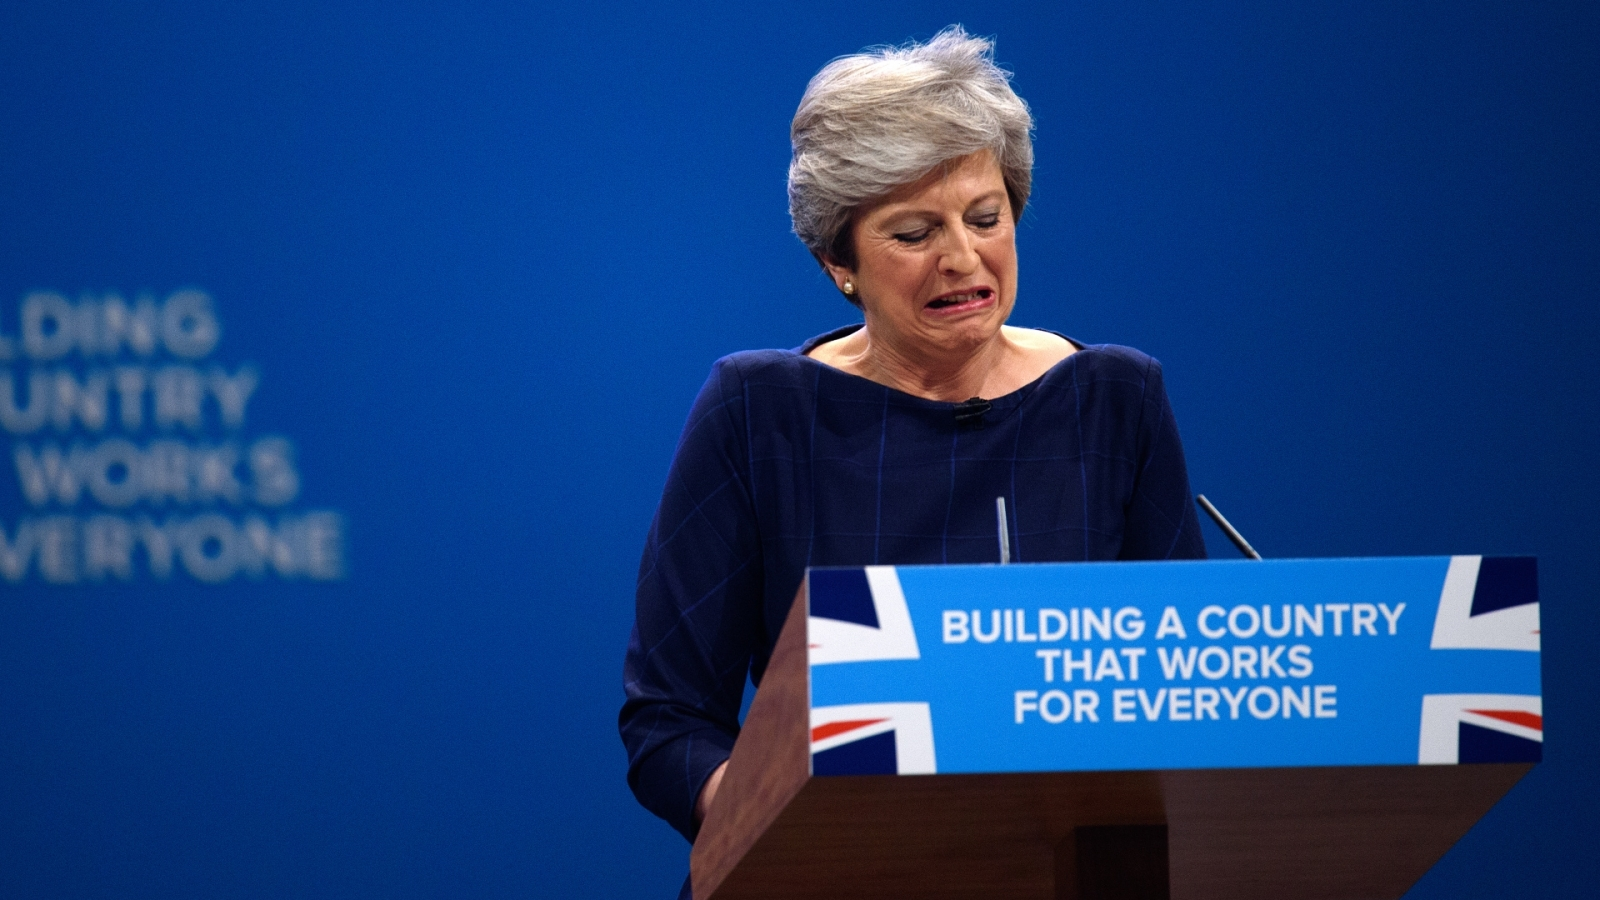 Theresa May Disaster speech